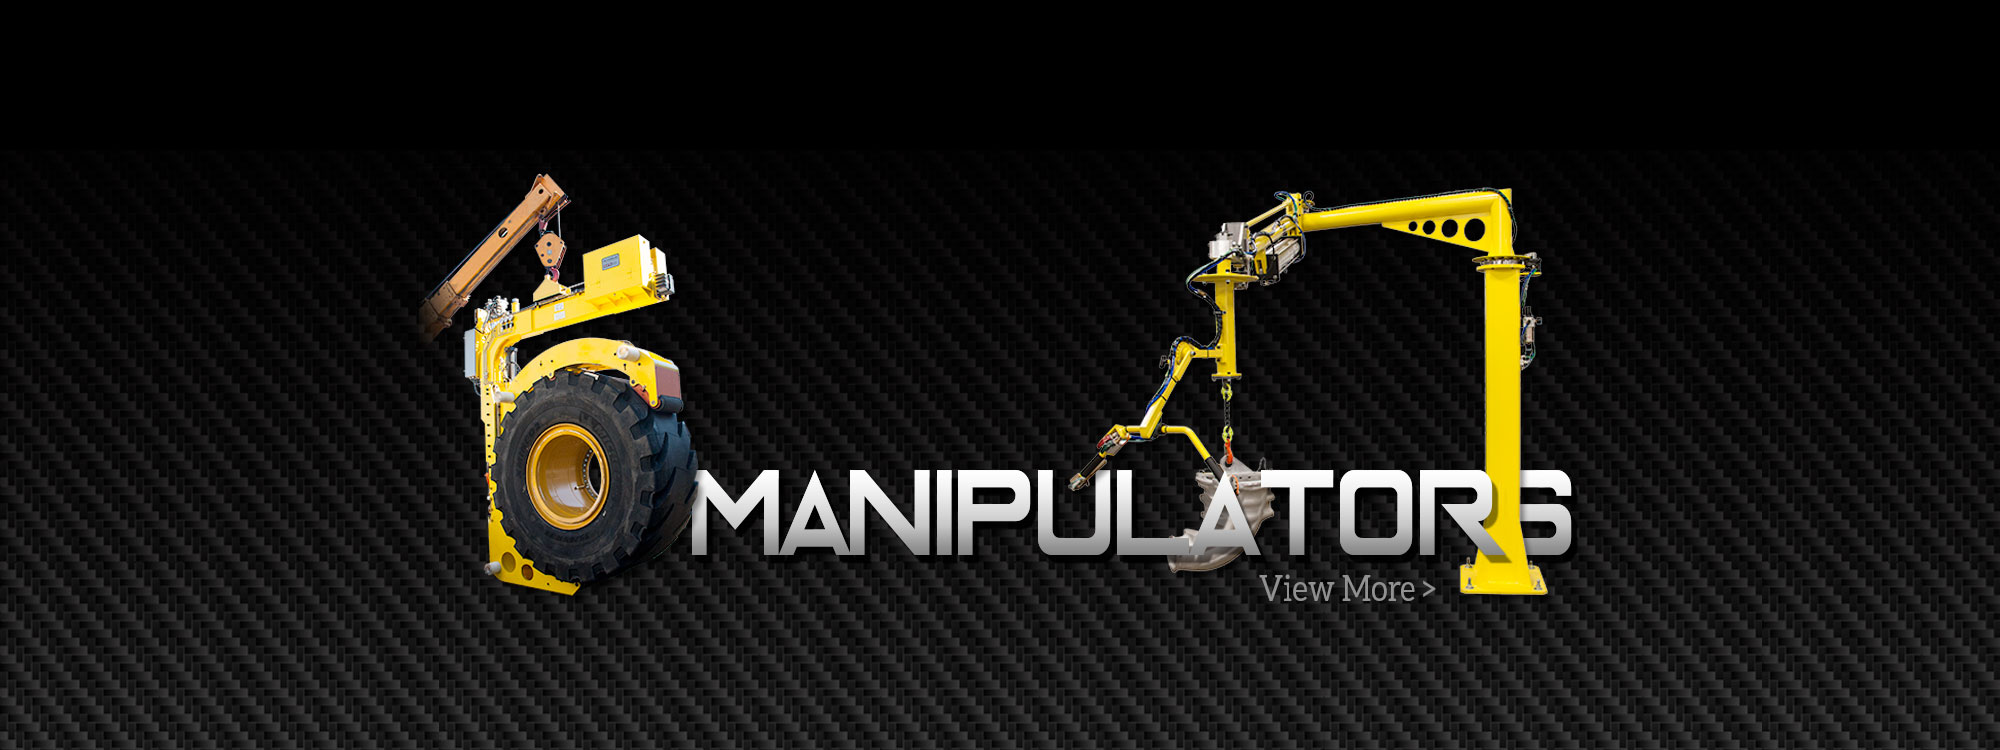 manipulators